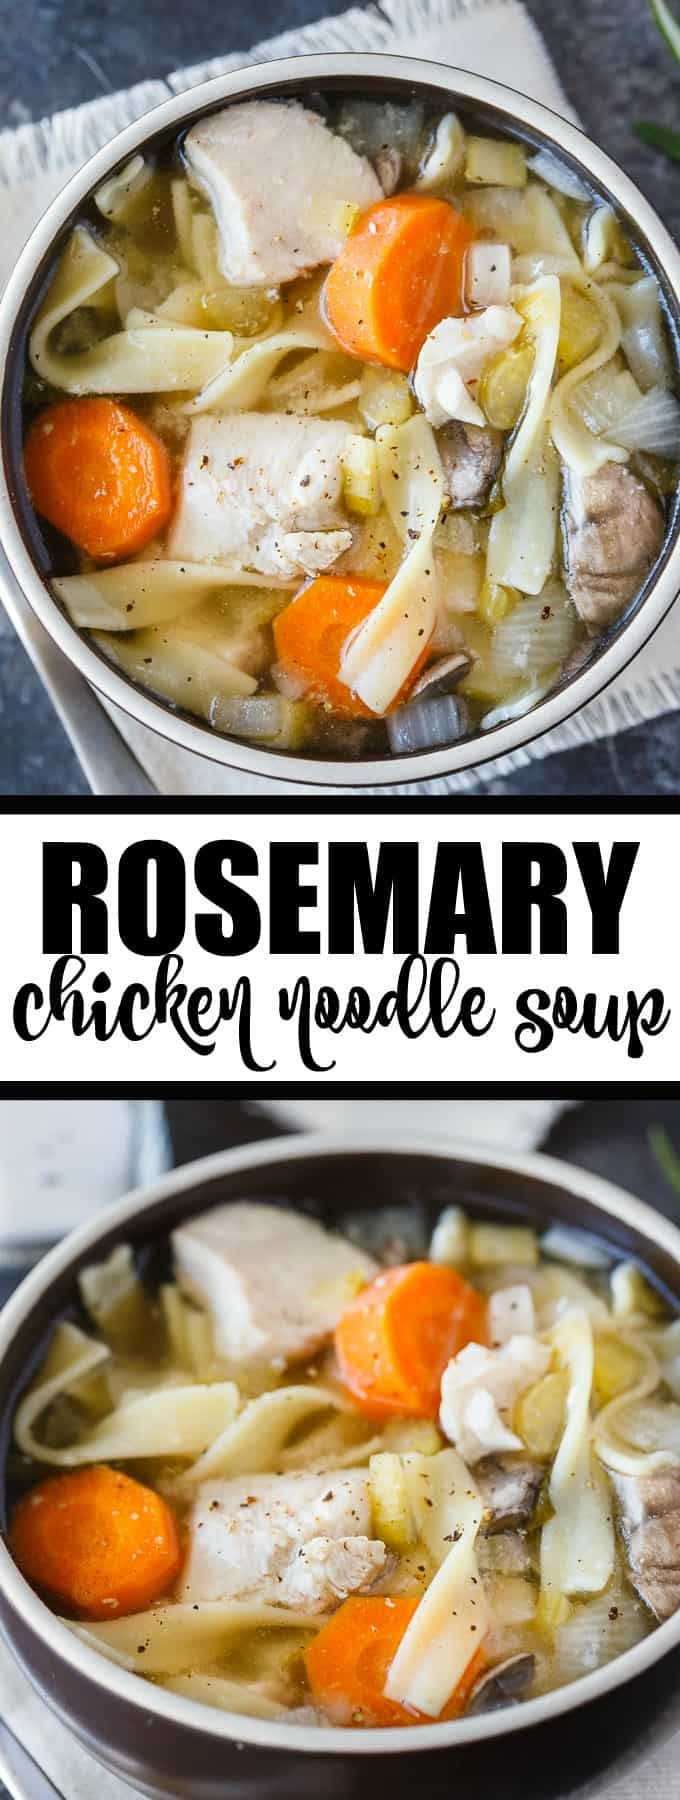 Rosemary Chicken Noodle Soup